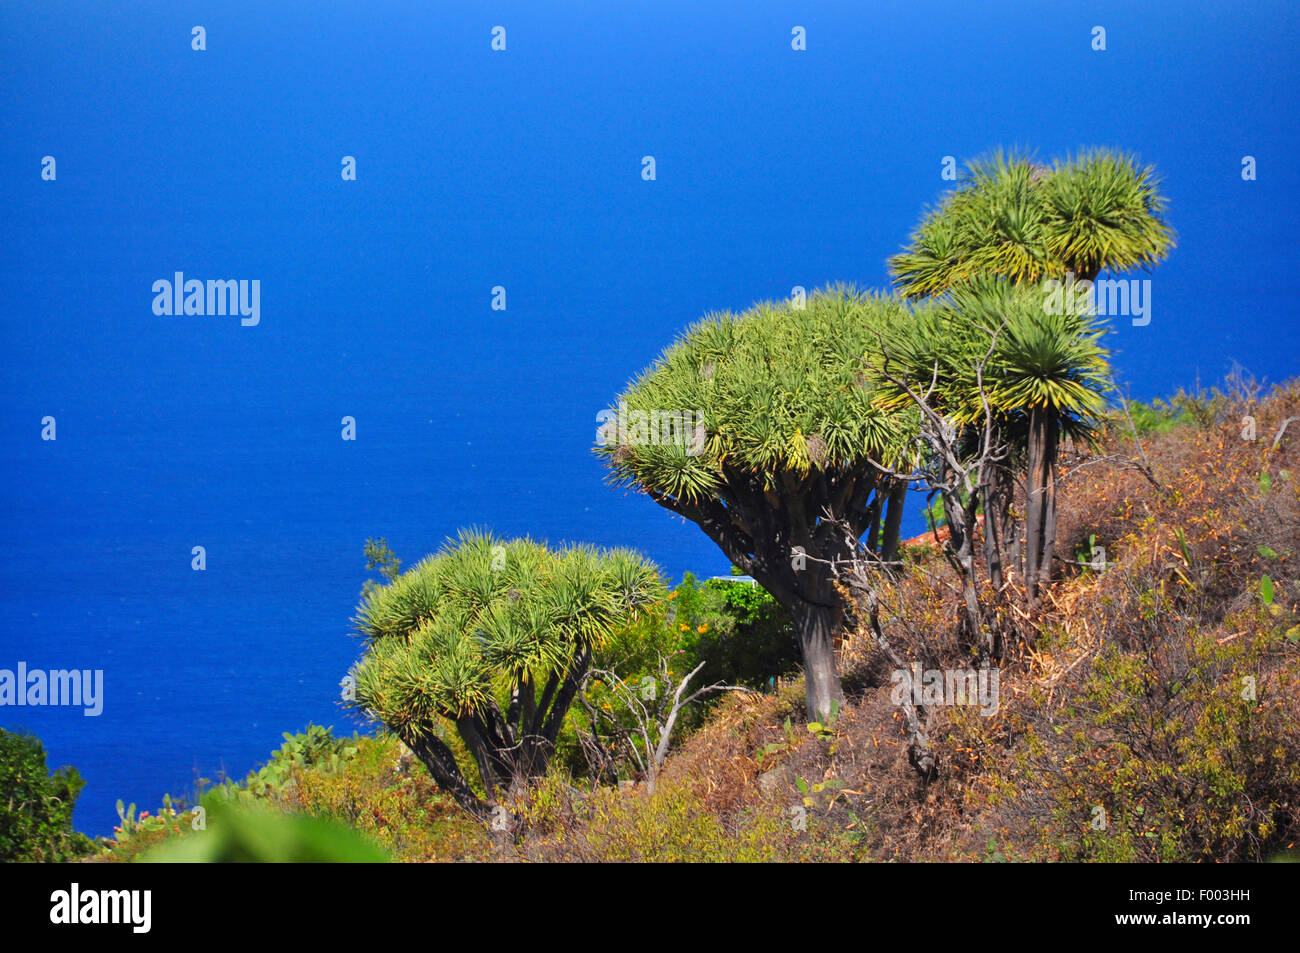 Larme de sang de dragon, Draegon Tree, Canaries arbre dragon, Drago (Dracaena draco), arbres Draegon en face de Photo Stock